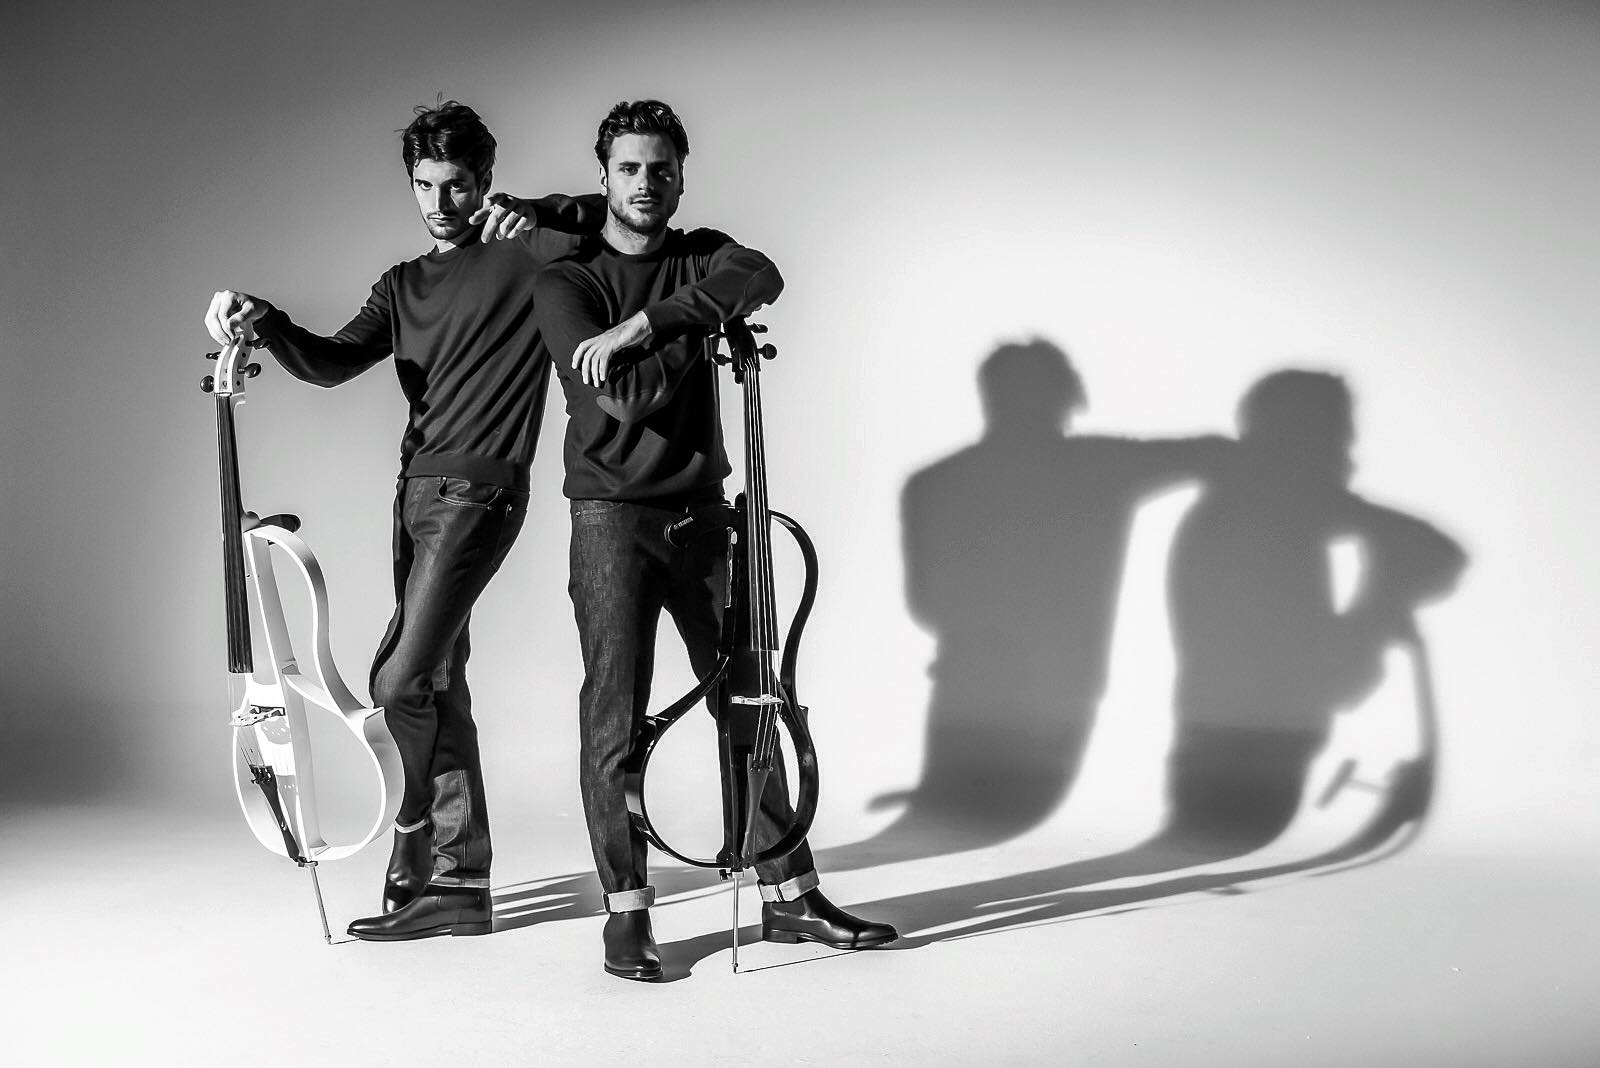 2Cellos at 2015 Terraneo Summer Break in Zadar - Hostel Forum Blog